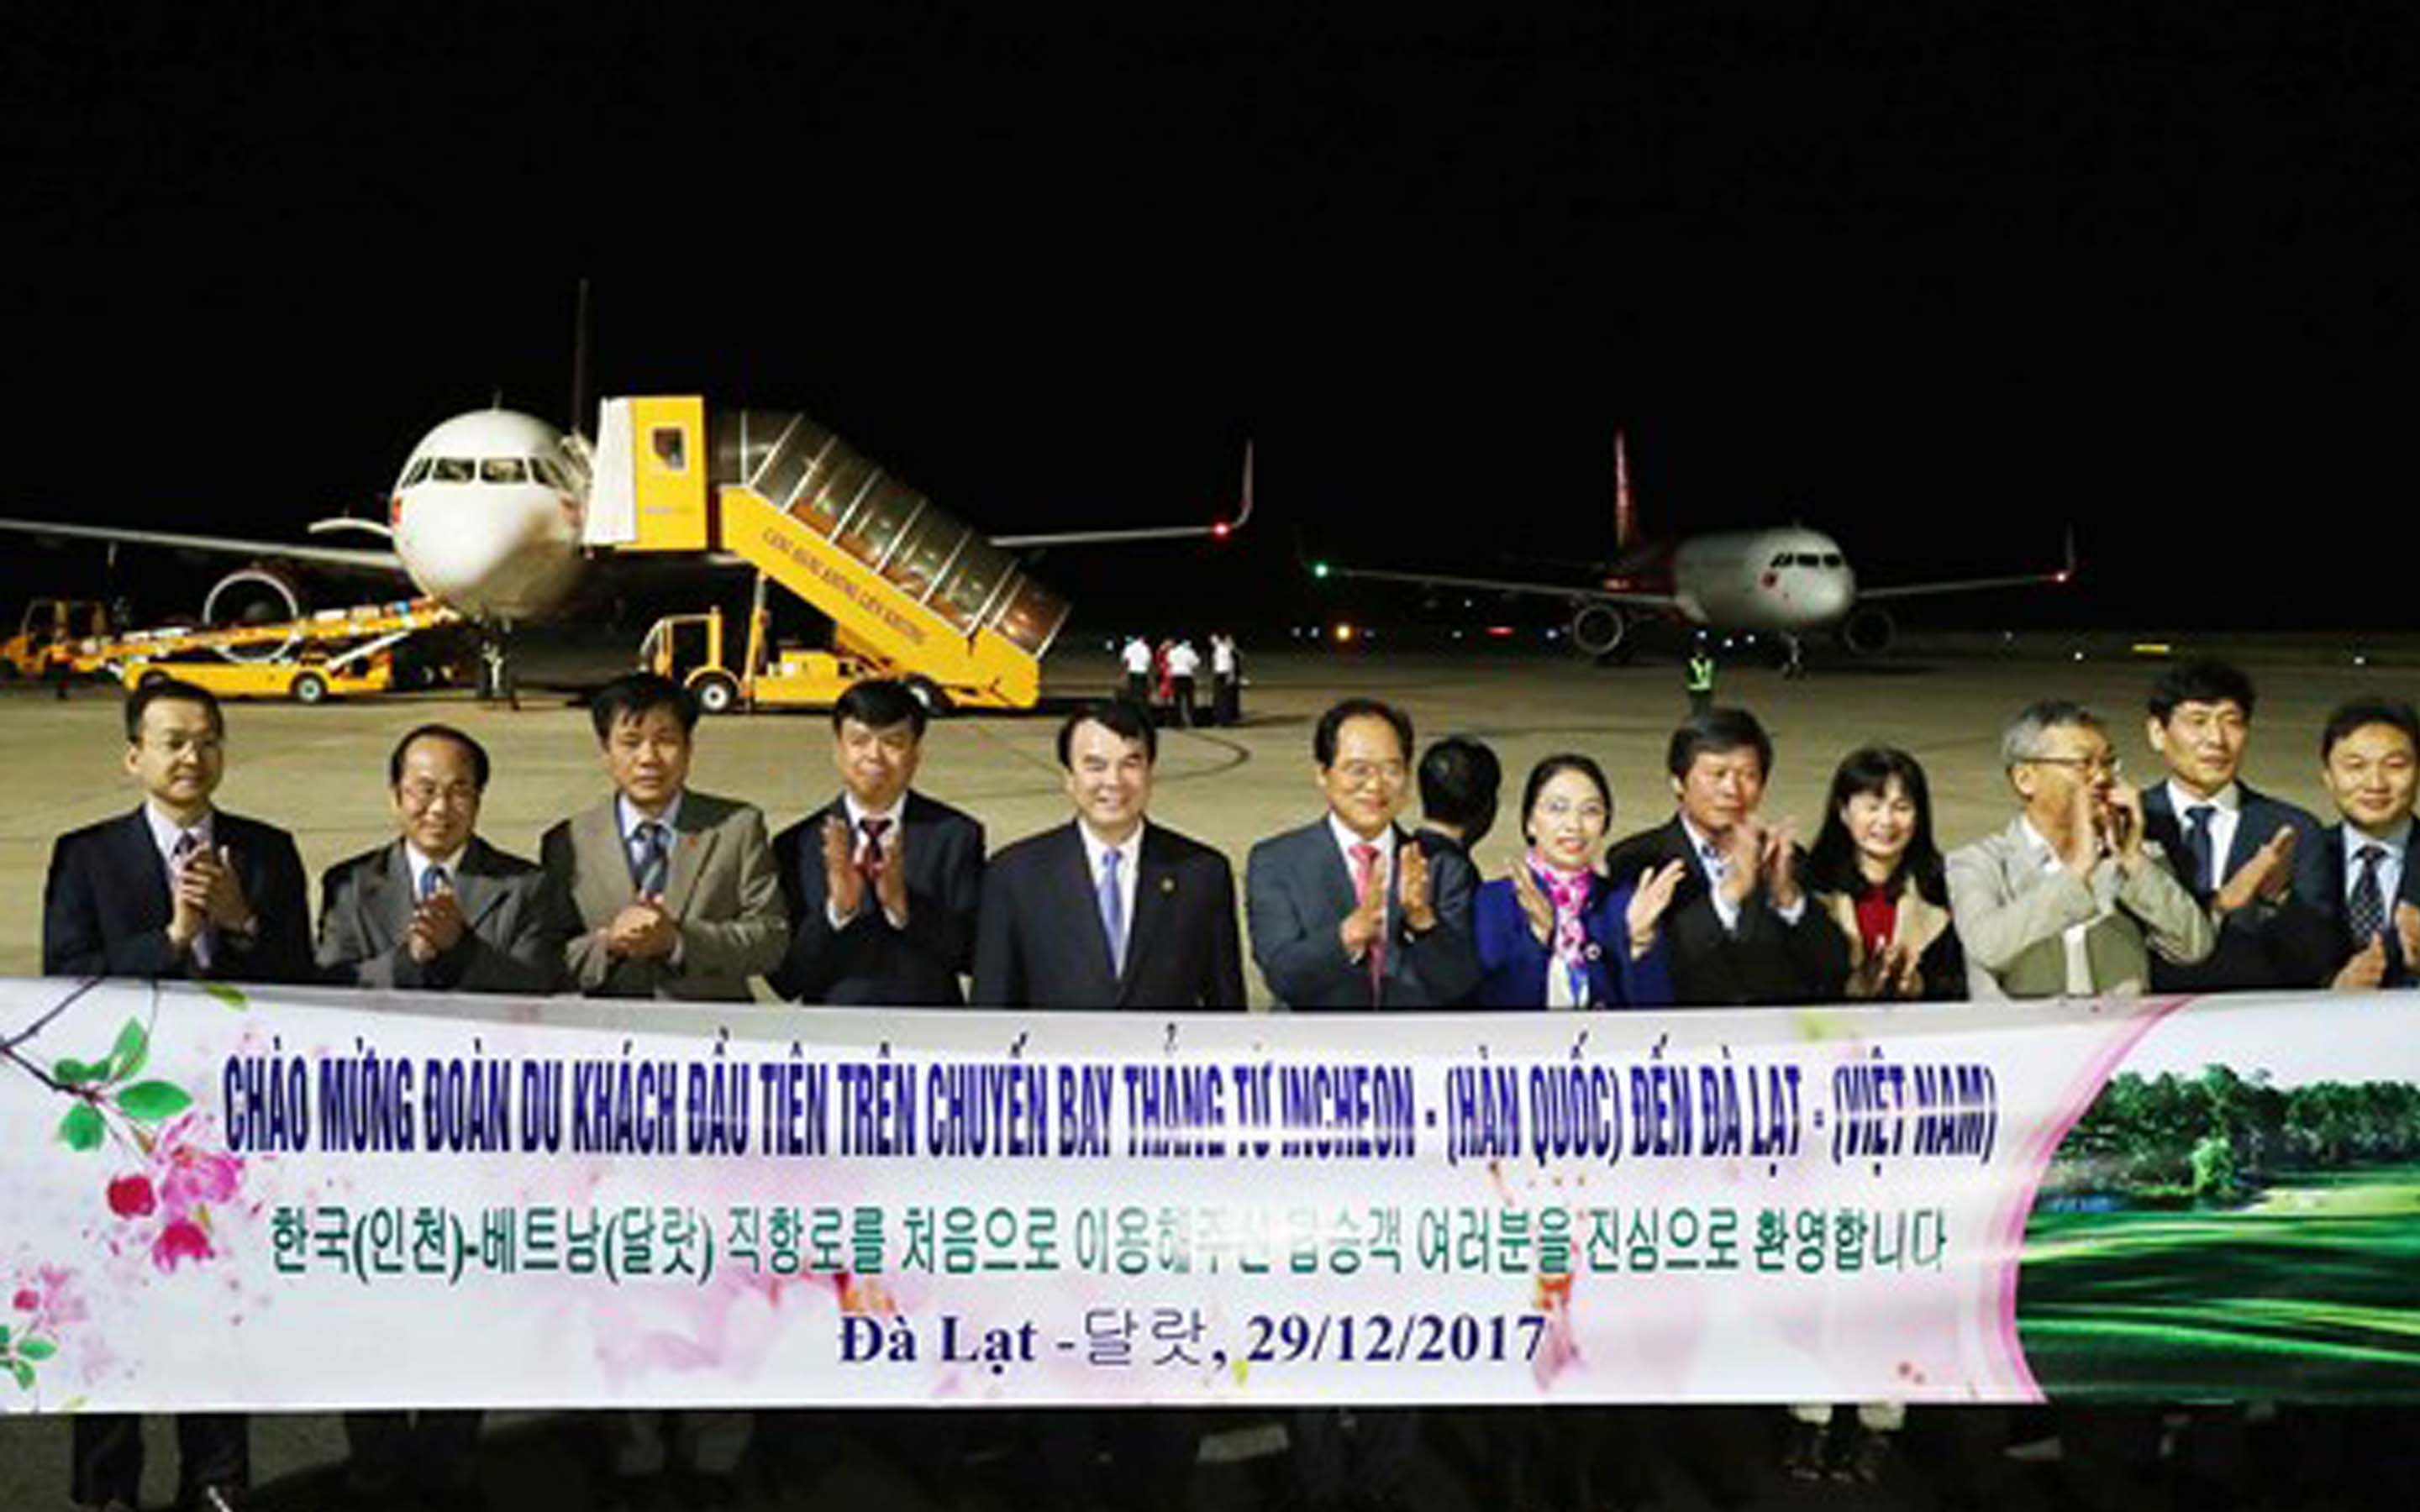 The opening ceremony of Incheon - Da Lat flight route